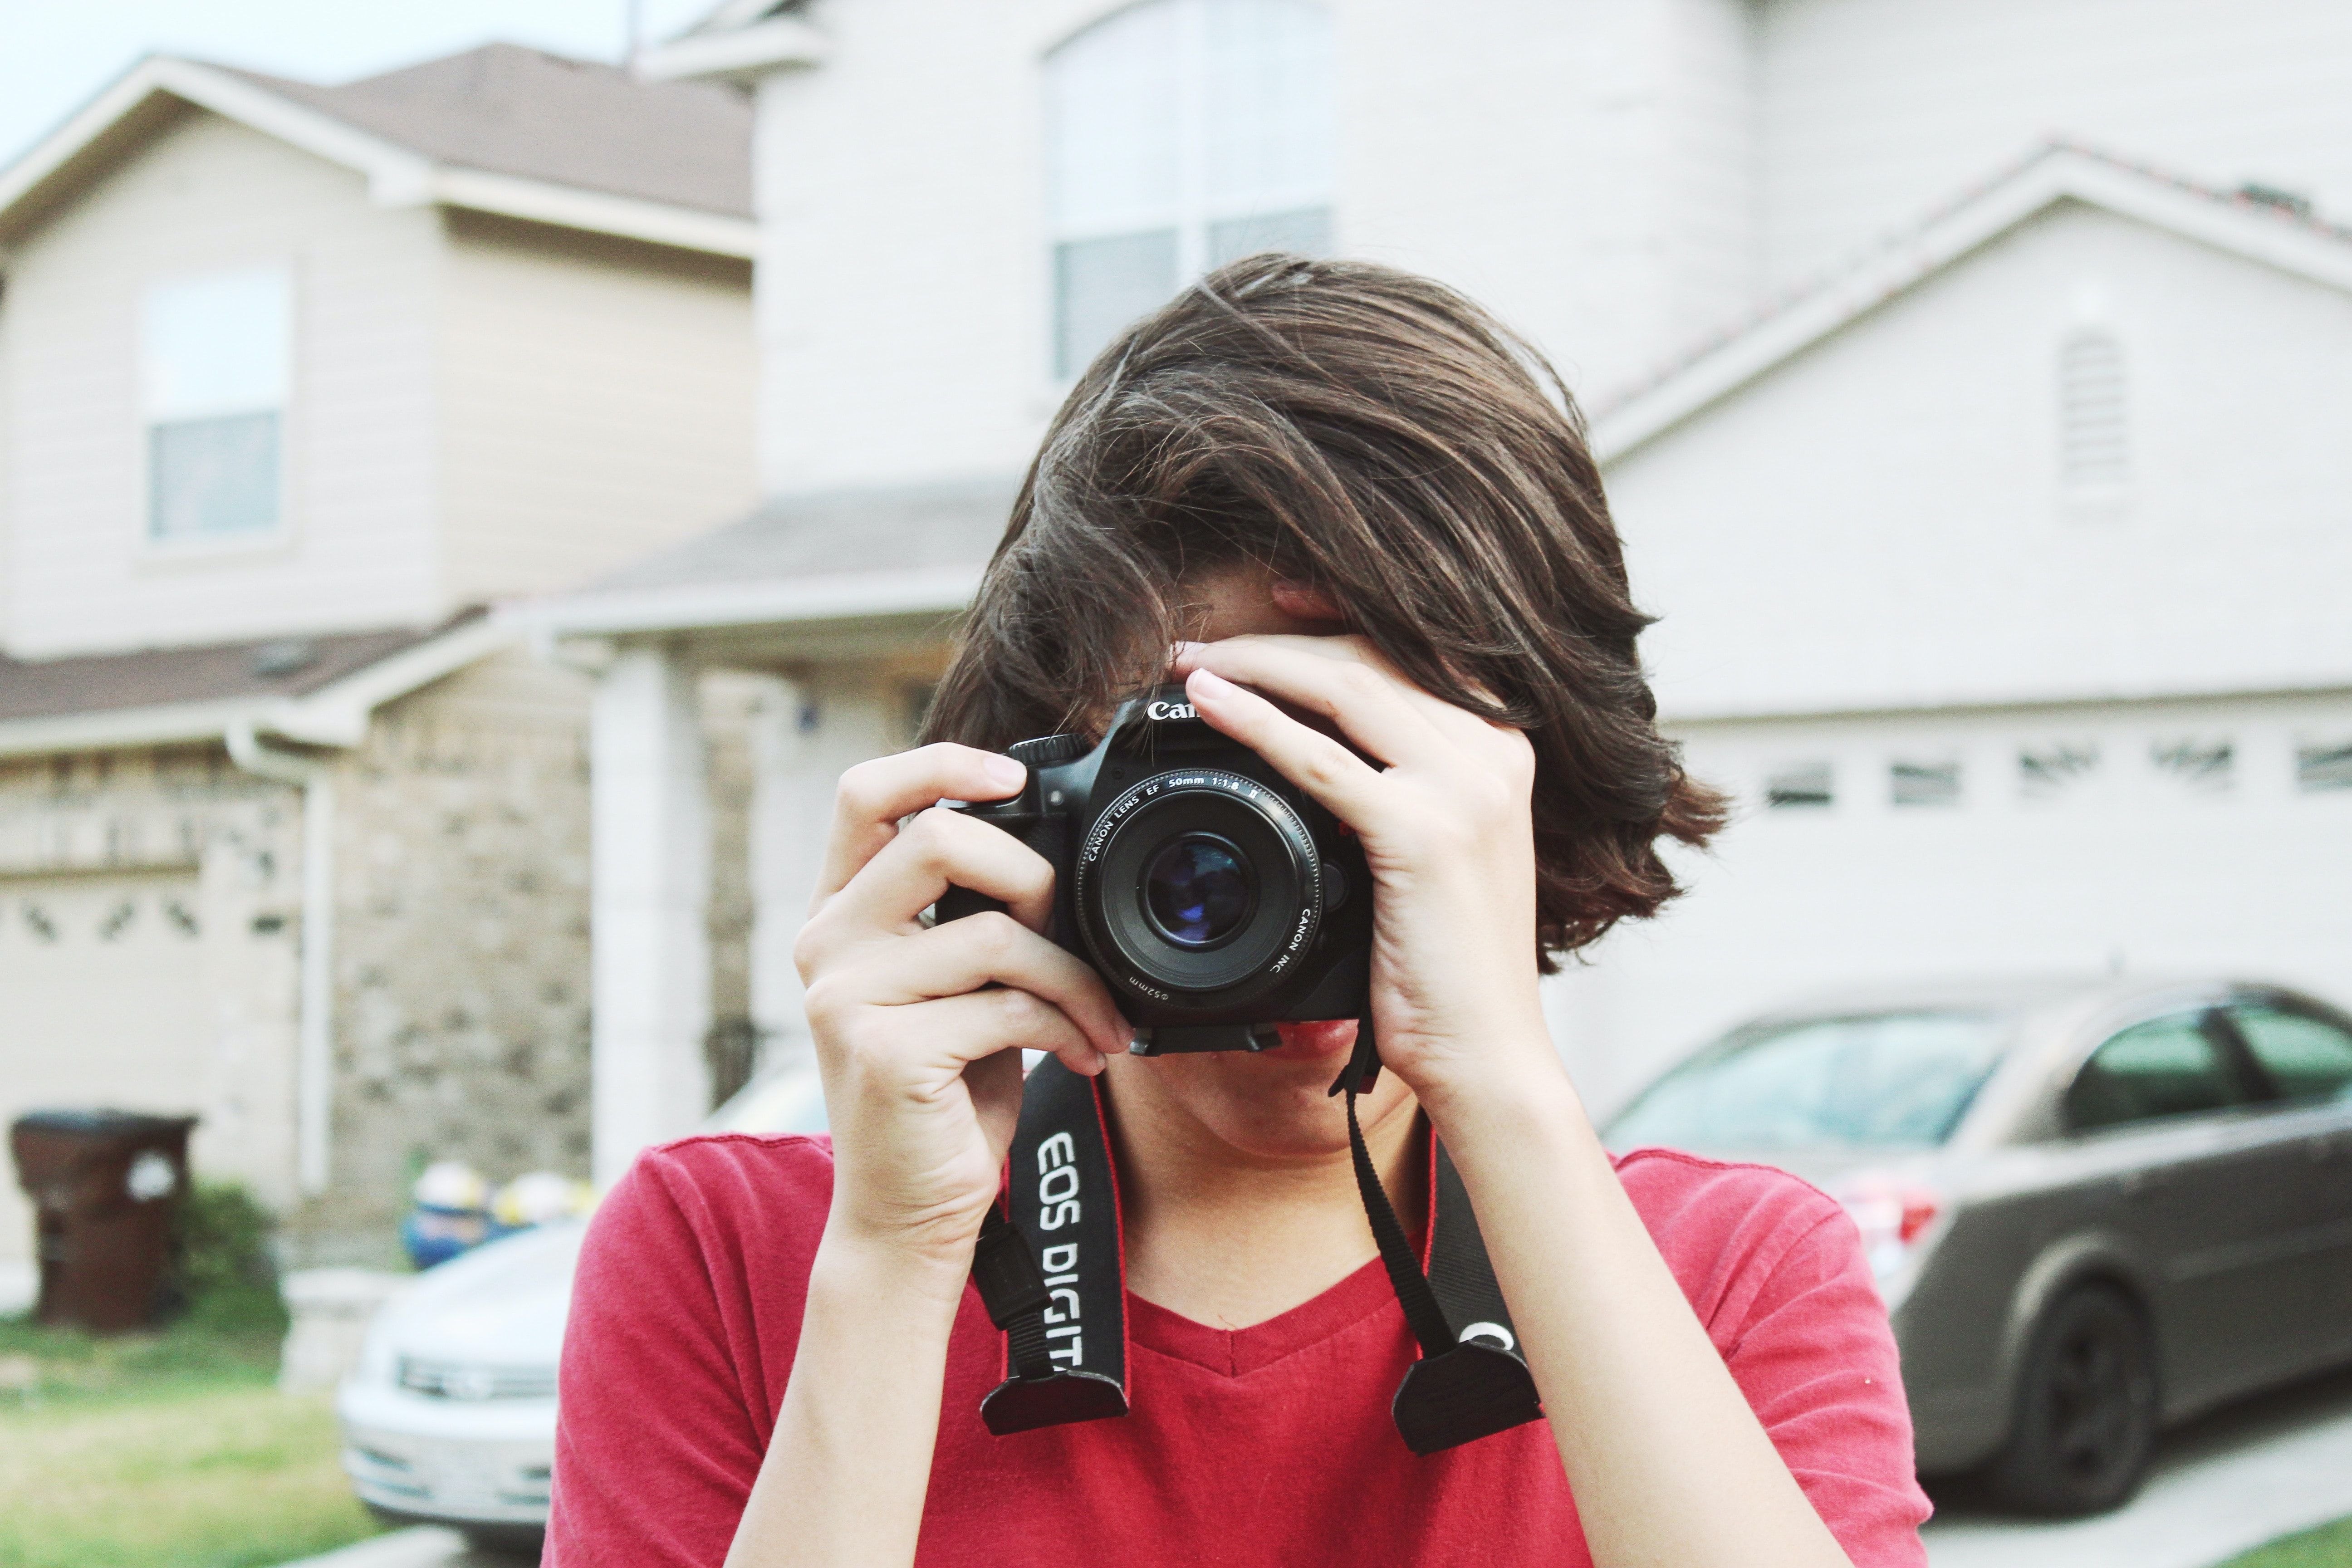 A guy wearing a red t-shirt taking a photo with a Canon camera